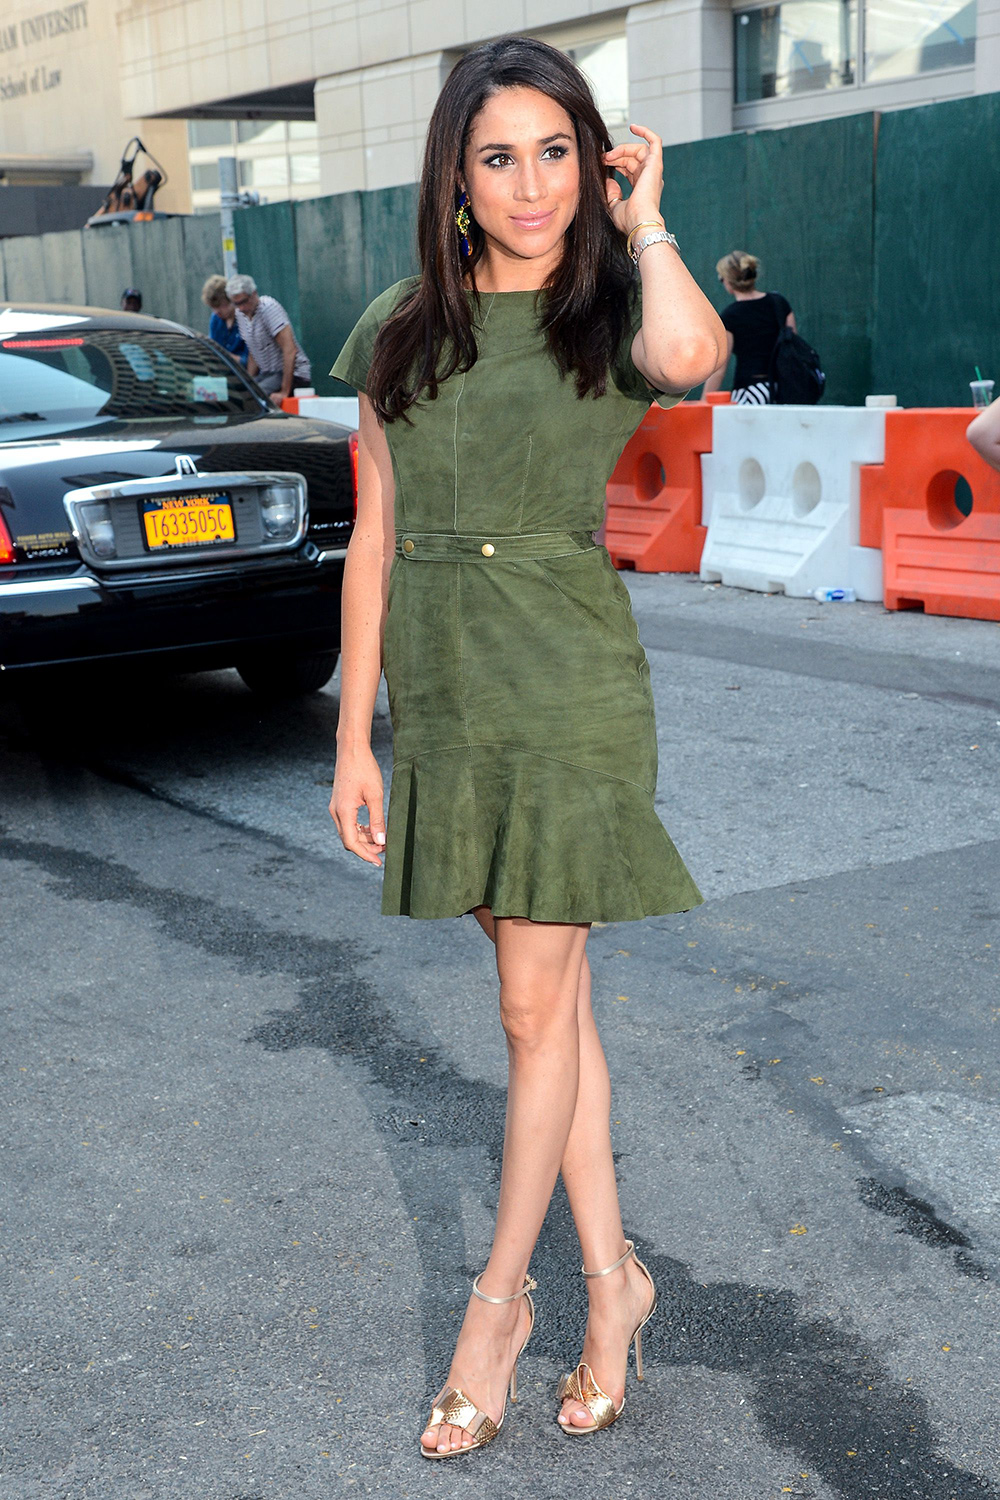 Meghan Markle attends 2014 Mercedes-Benz Fashion Week during day 7 on September 11, 2013 in New York City.